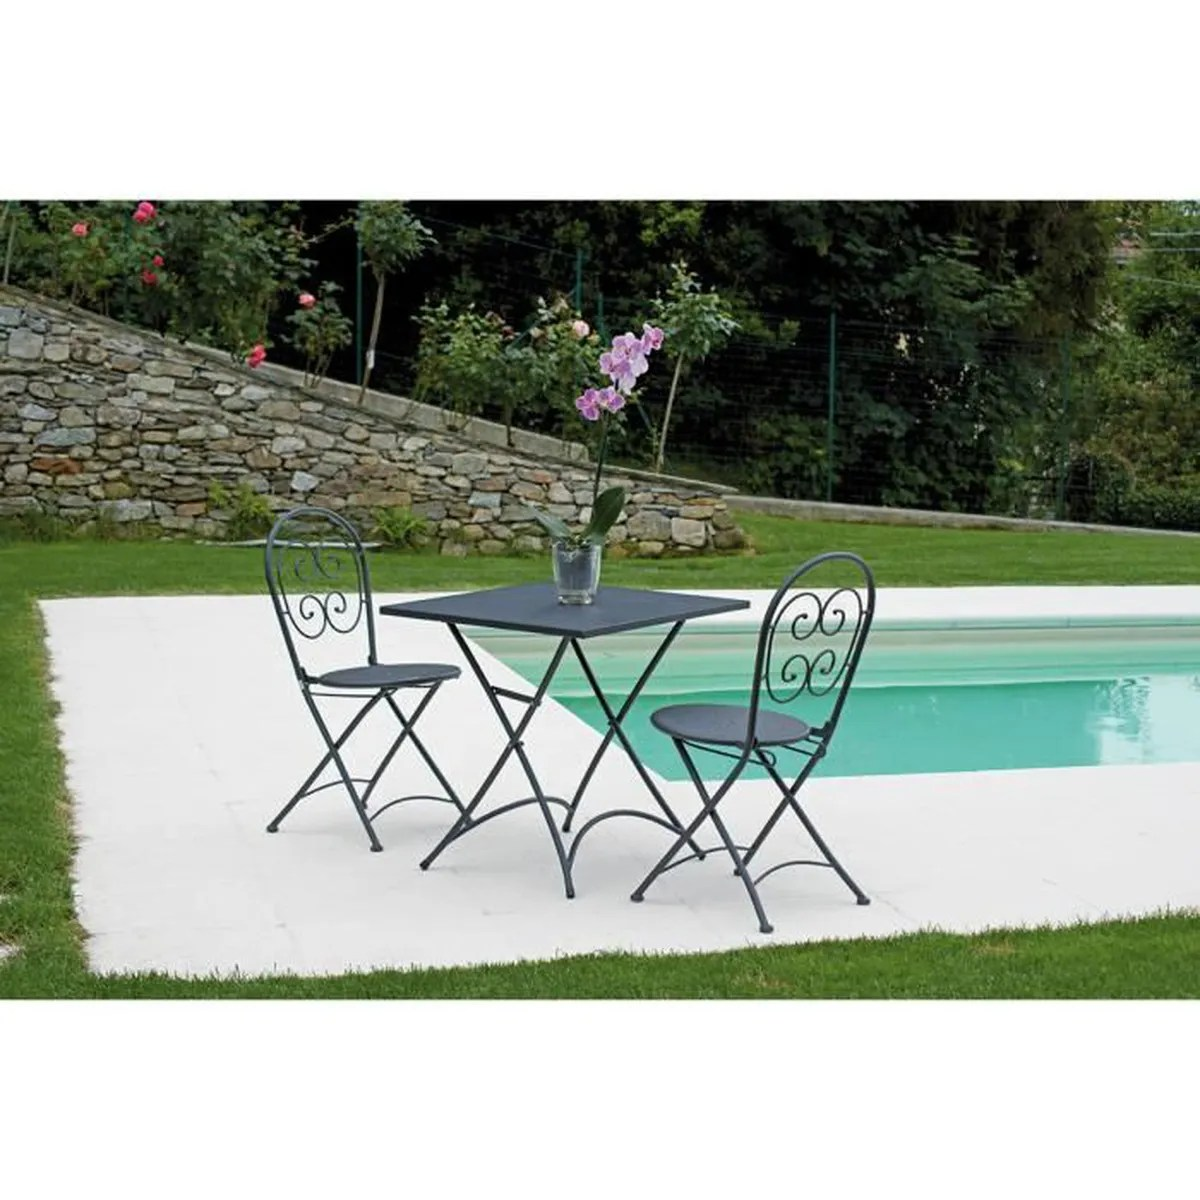 Salon De Jardin Table Pliante Ensemble De Jardin Table Pliante 2 Chaises En Fe